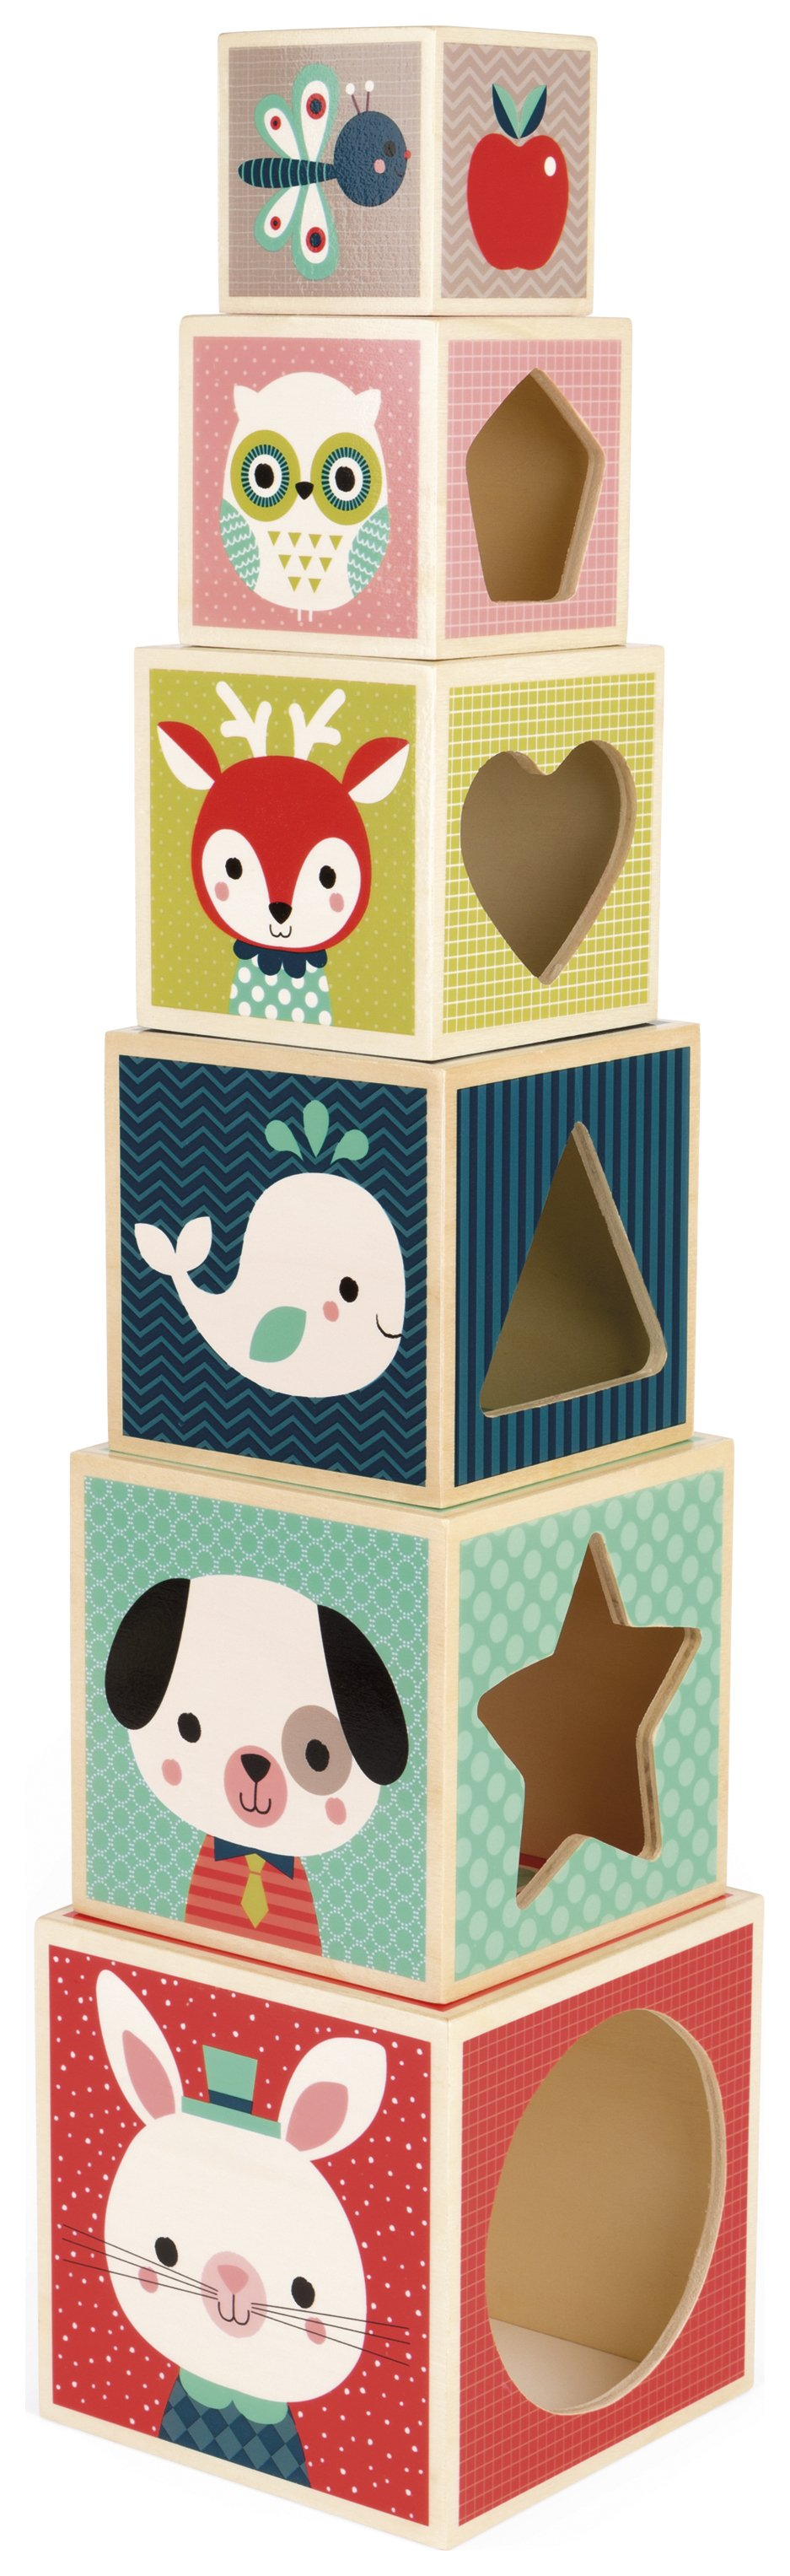 Image of Alex 6 Block Pyramid Baby Forest.